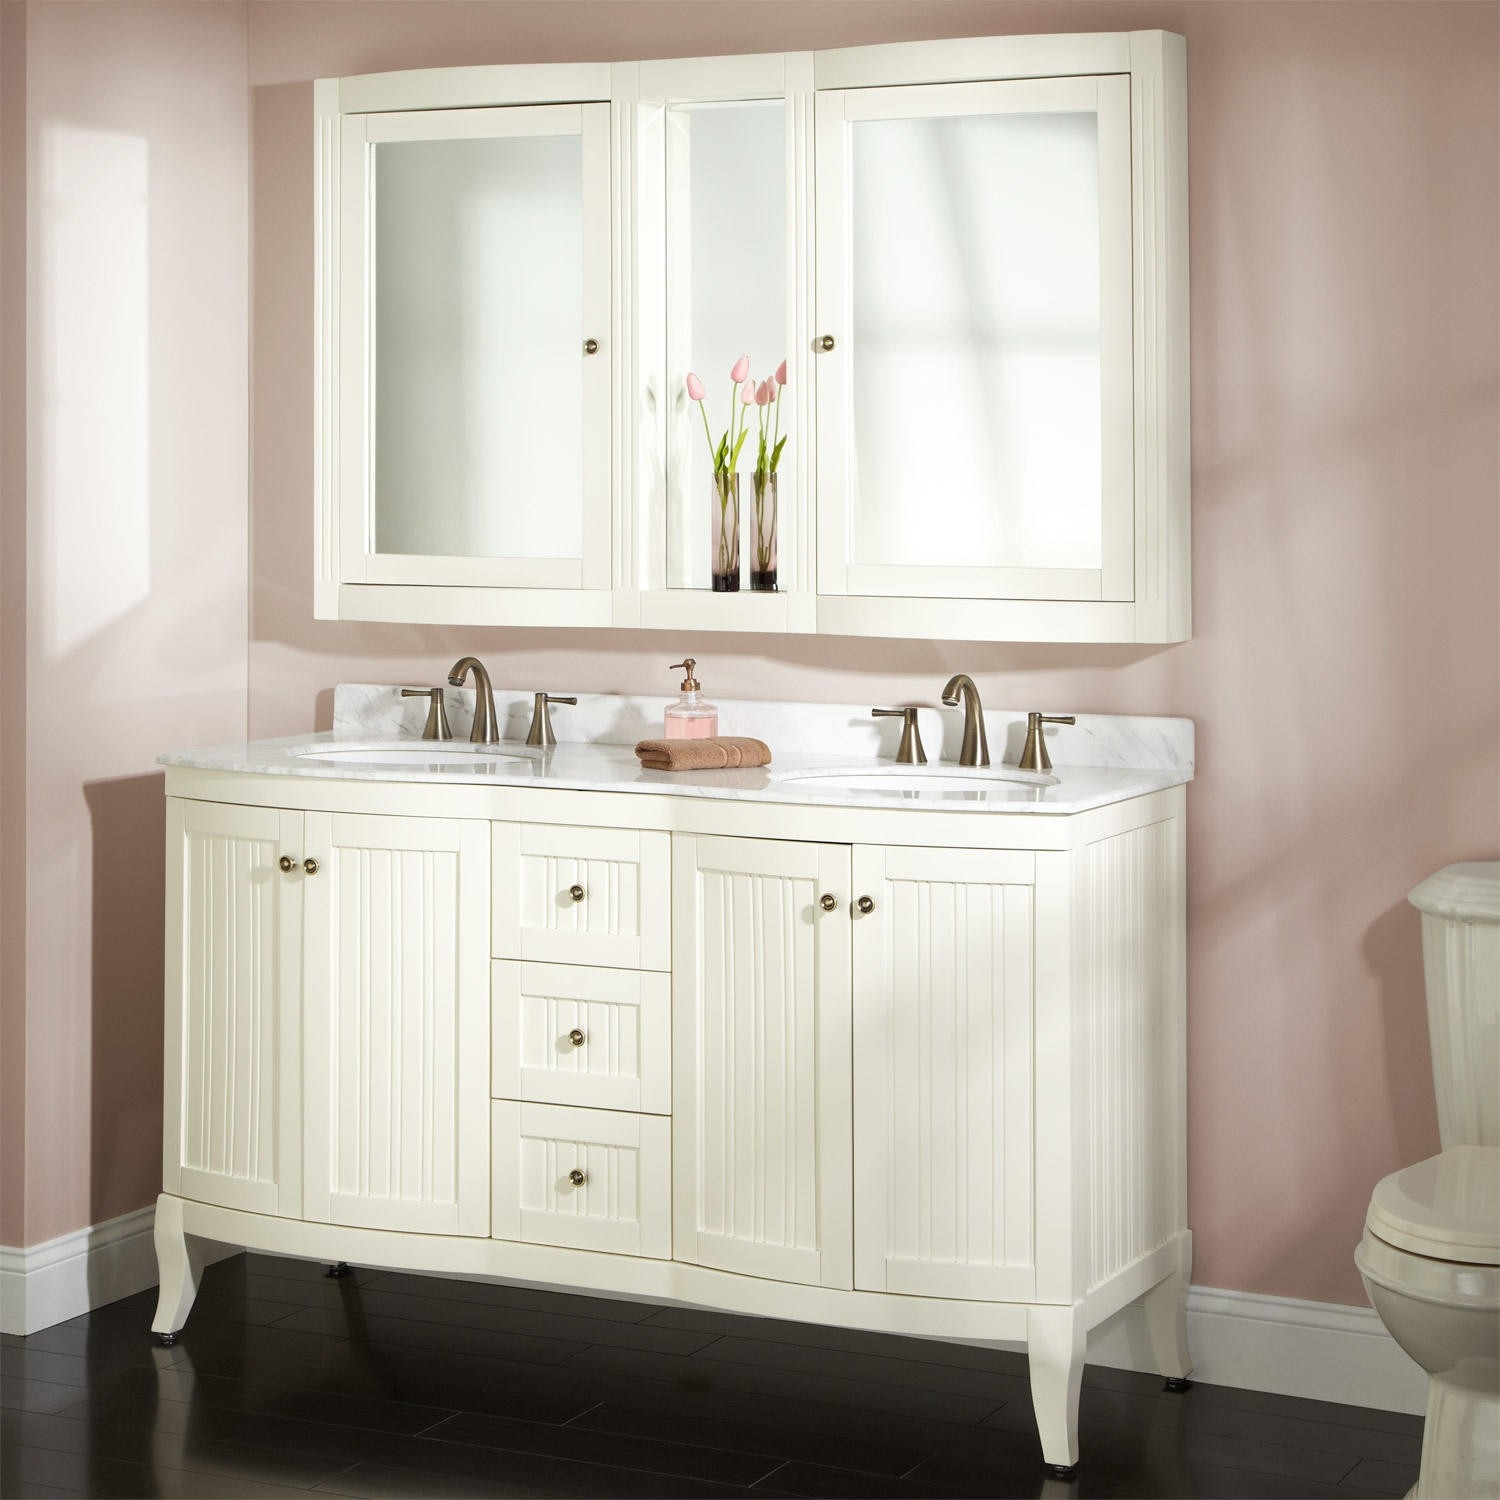 Bathroom Vanities With Medicine Cabinetsquot palmetto creamy white double vanity set bathroom vanities and